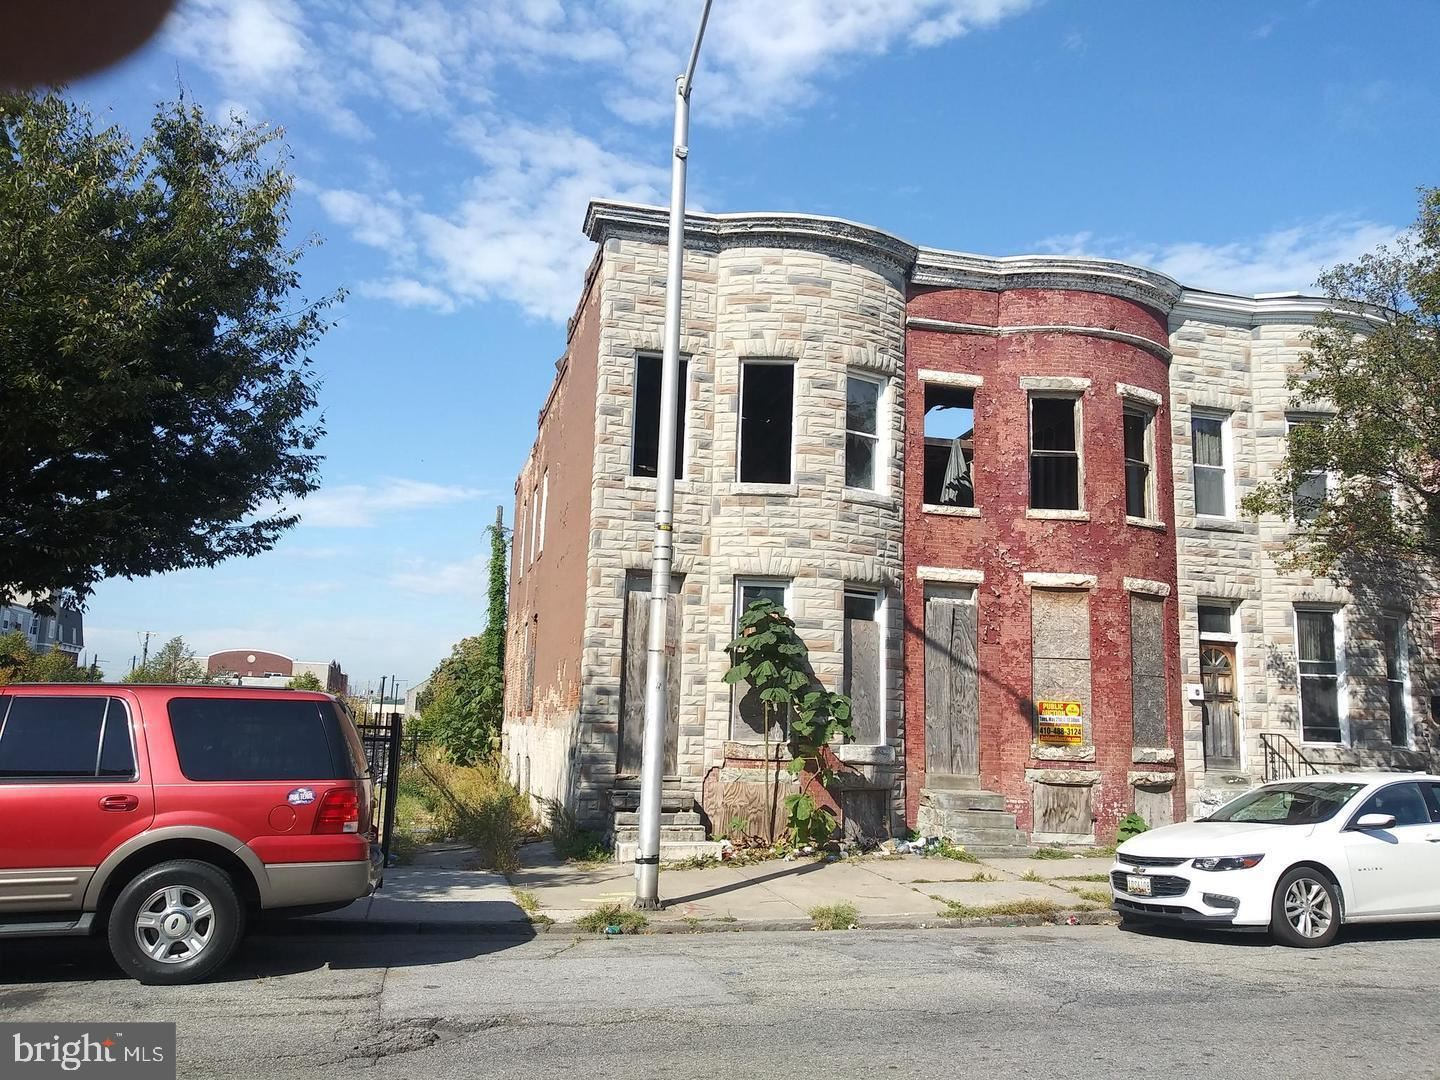 1220 N PATTERSON PARK AVE, Baltimore, MD 21213 - MLS#: MDBA543132